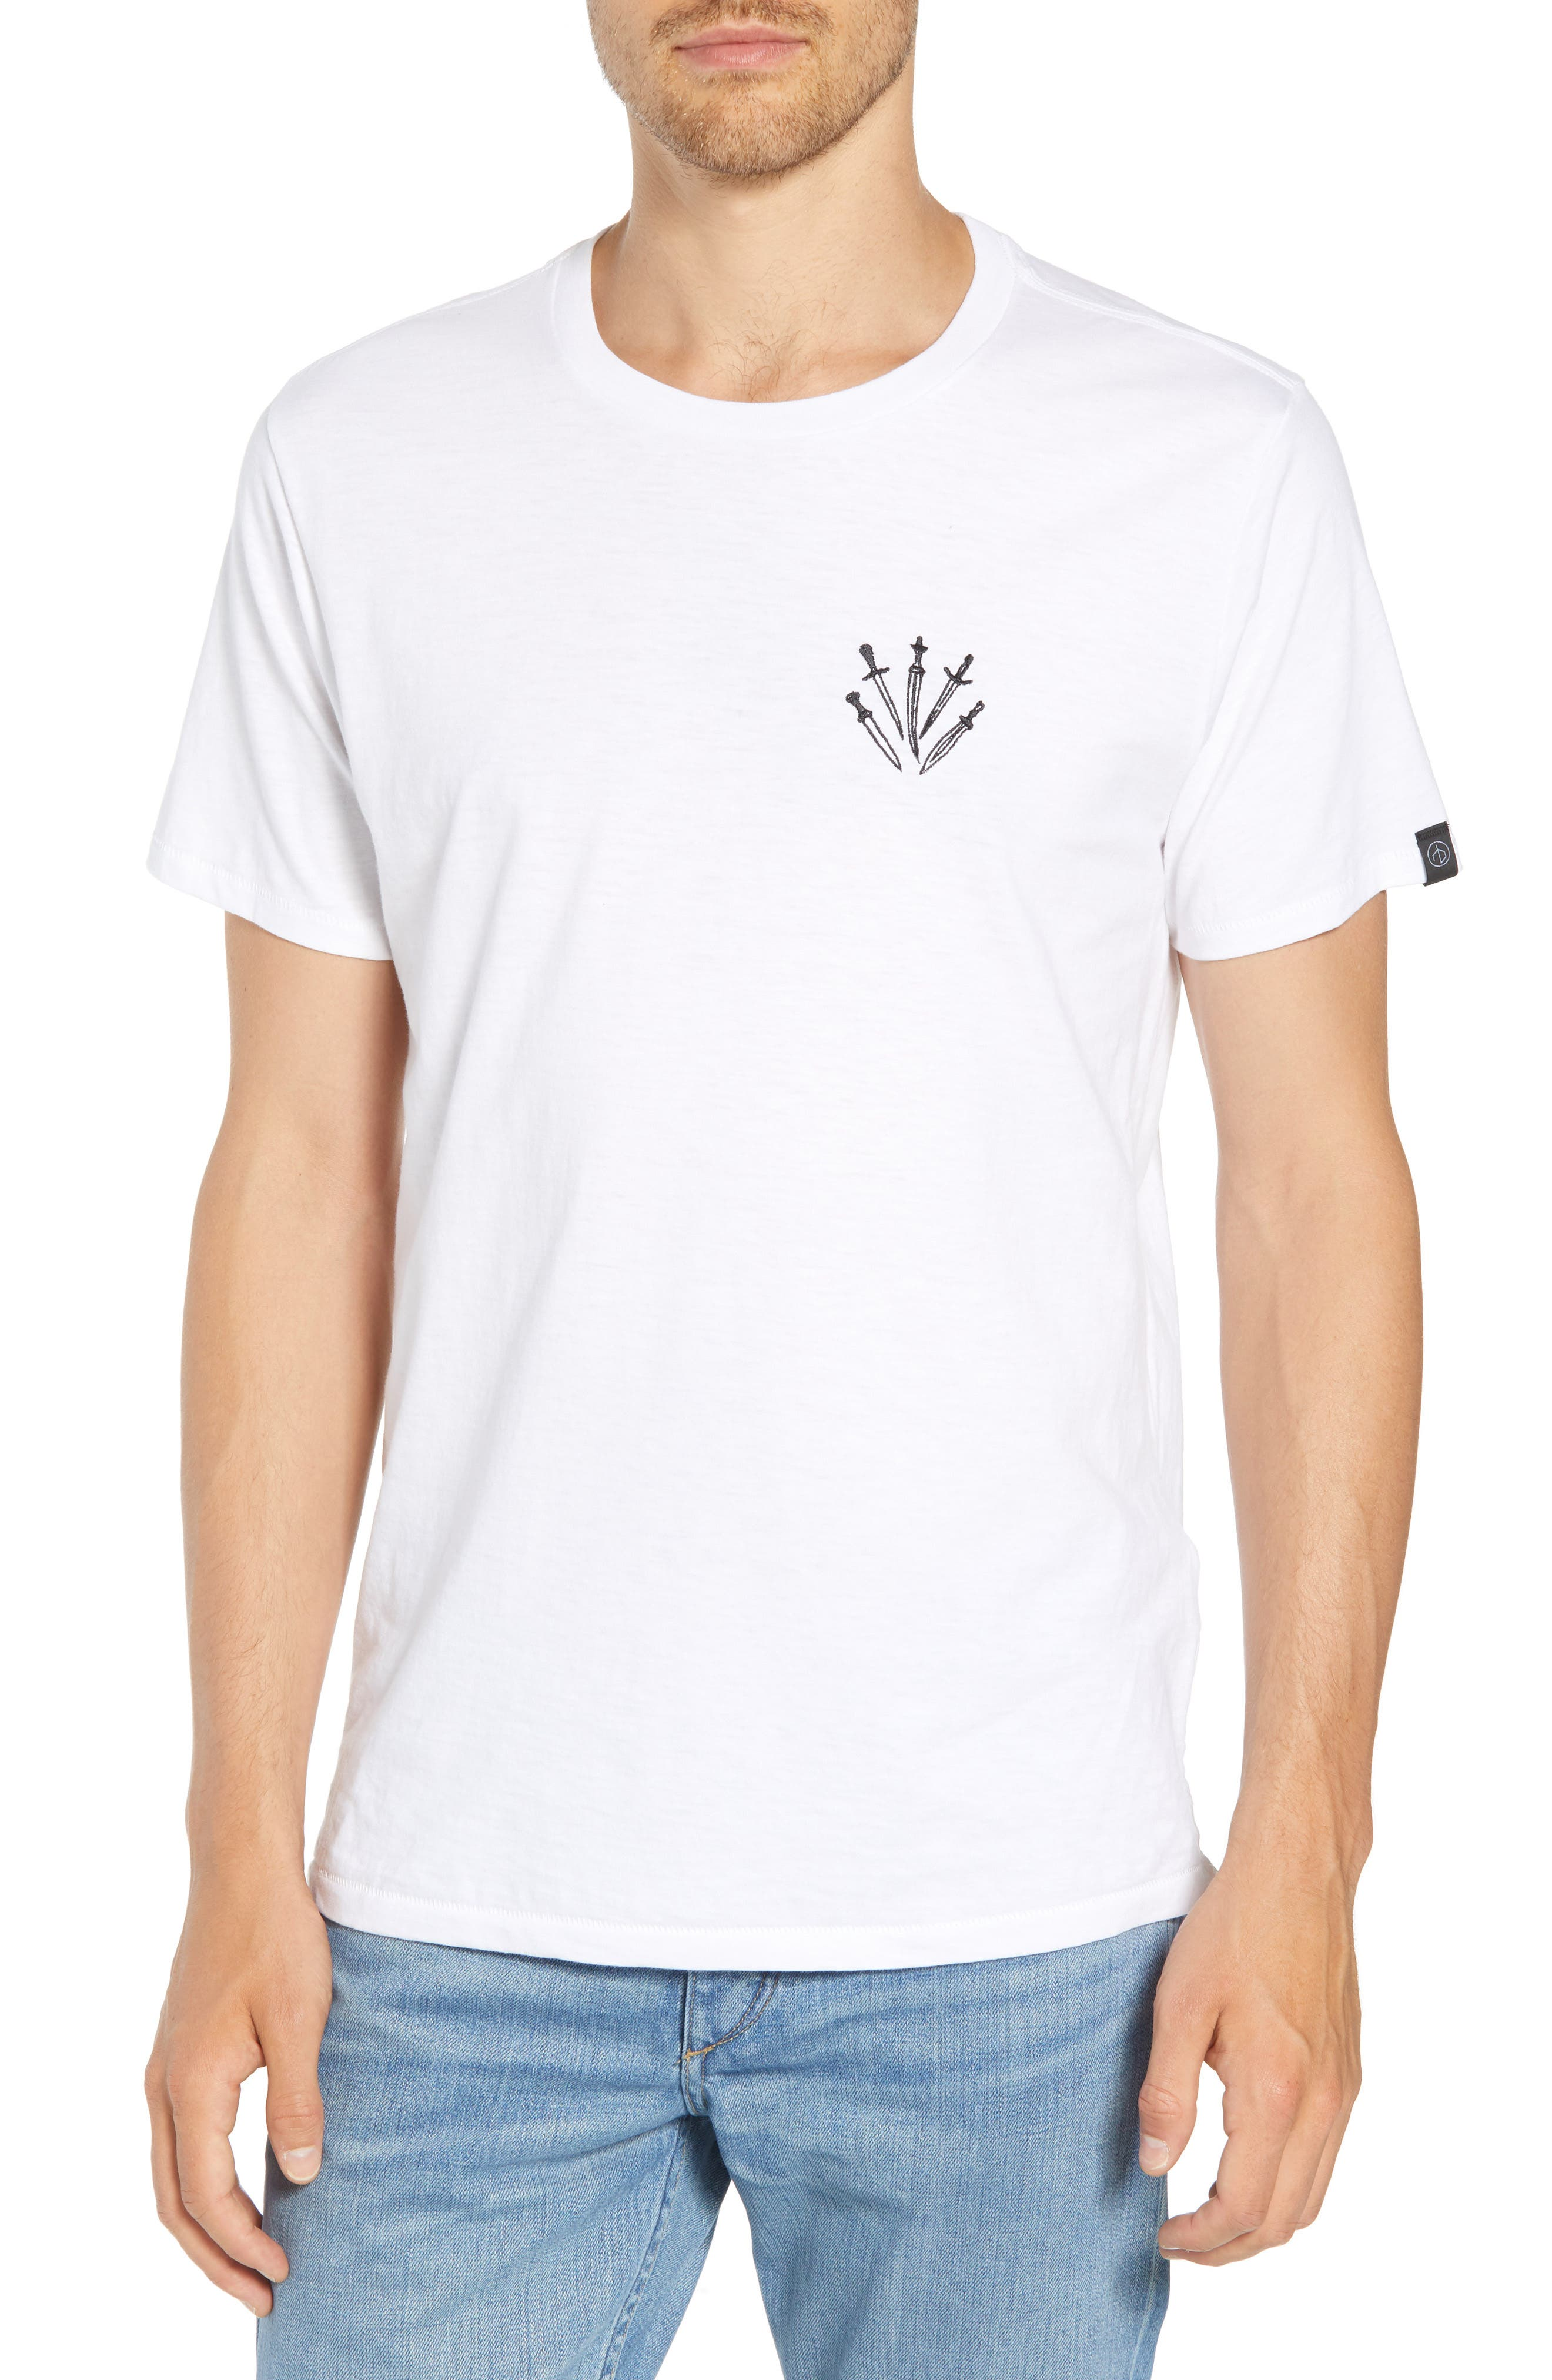 Dagger Embroidered T-Shirt,                             Main thumbnail 1, color,                             WHITE